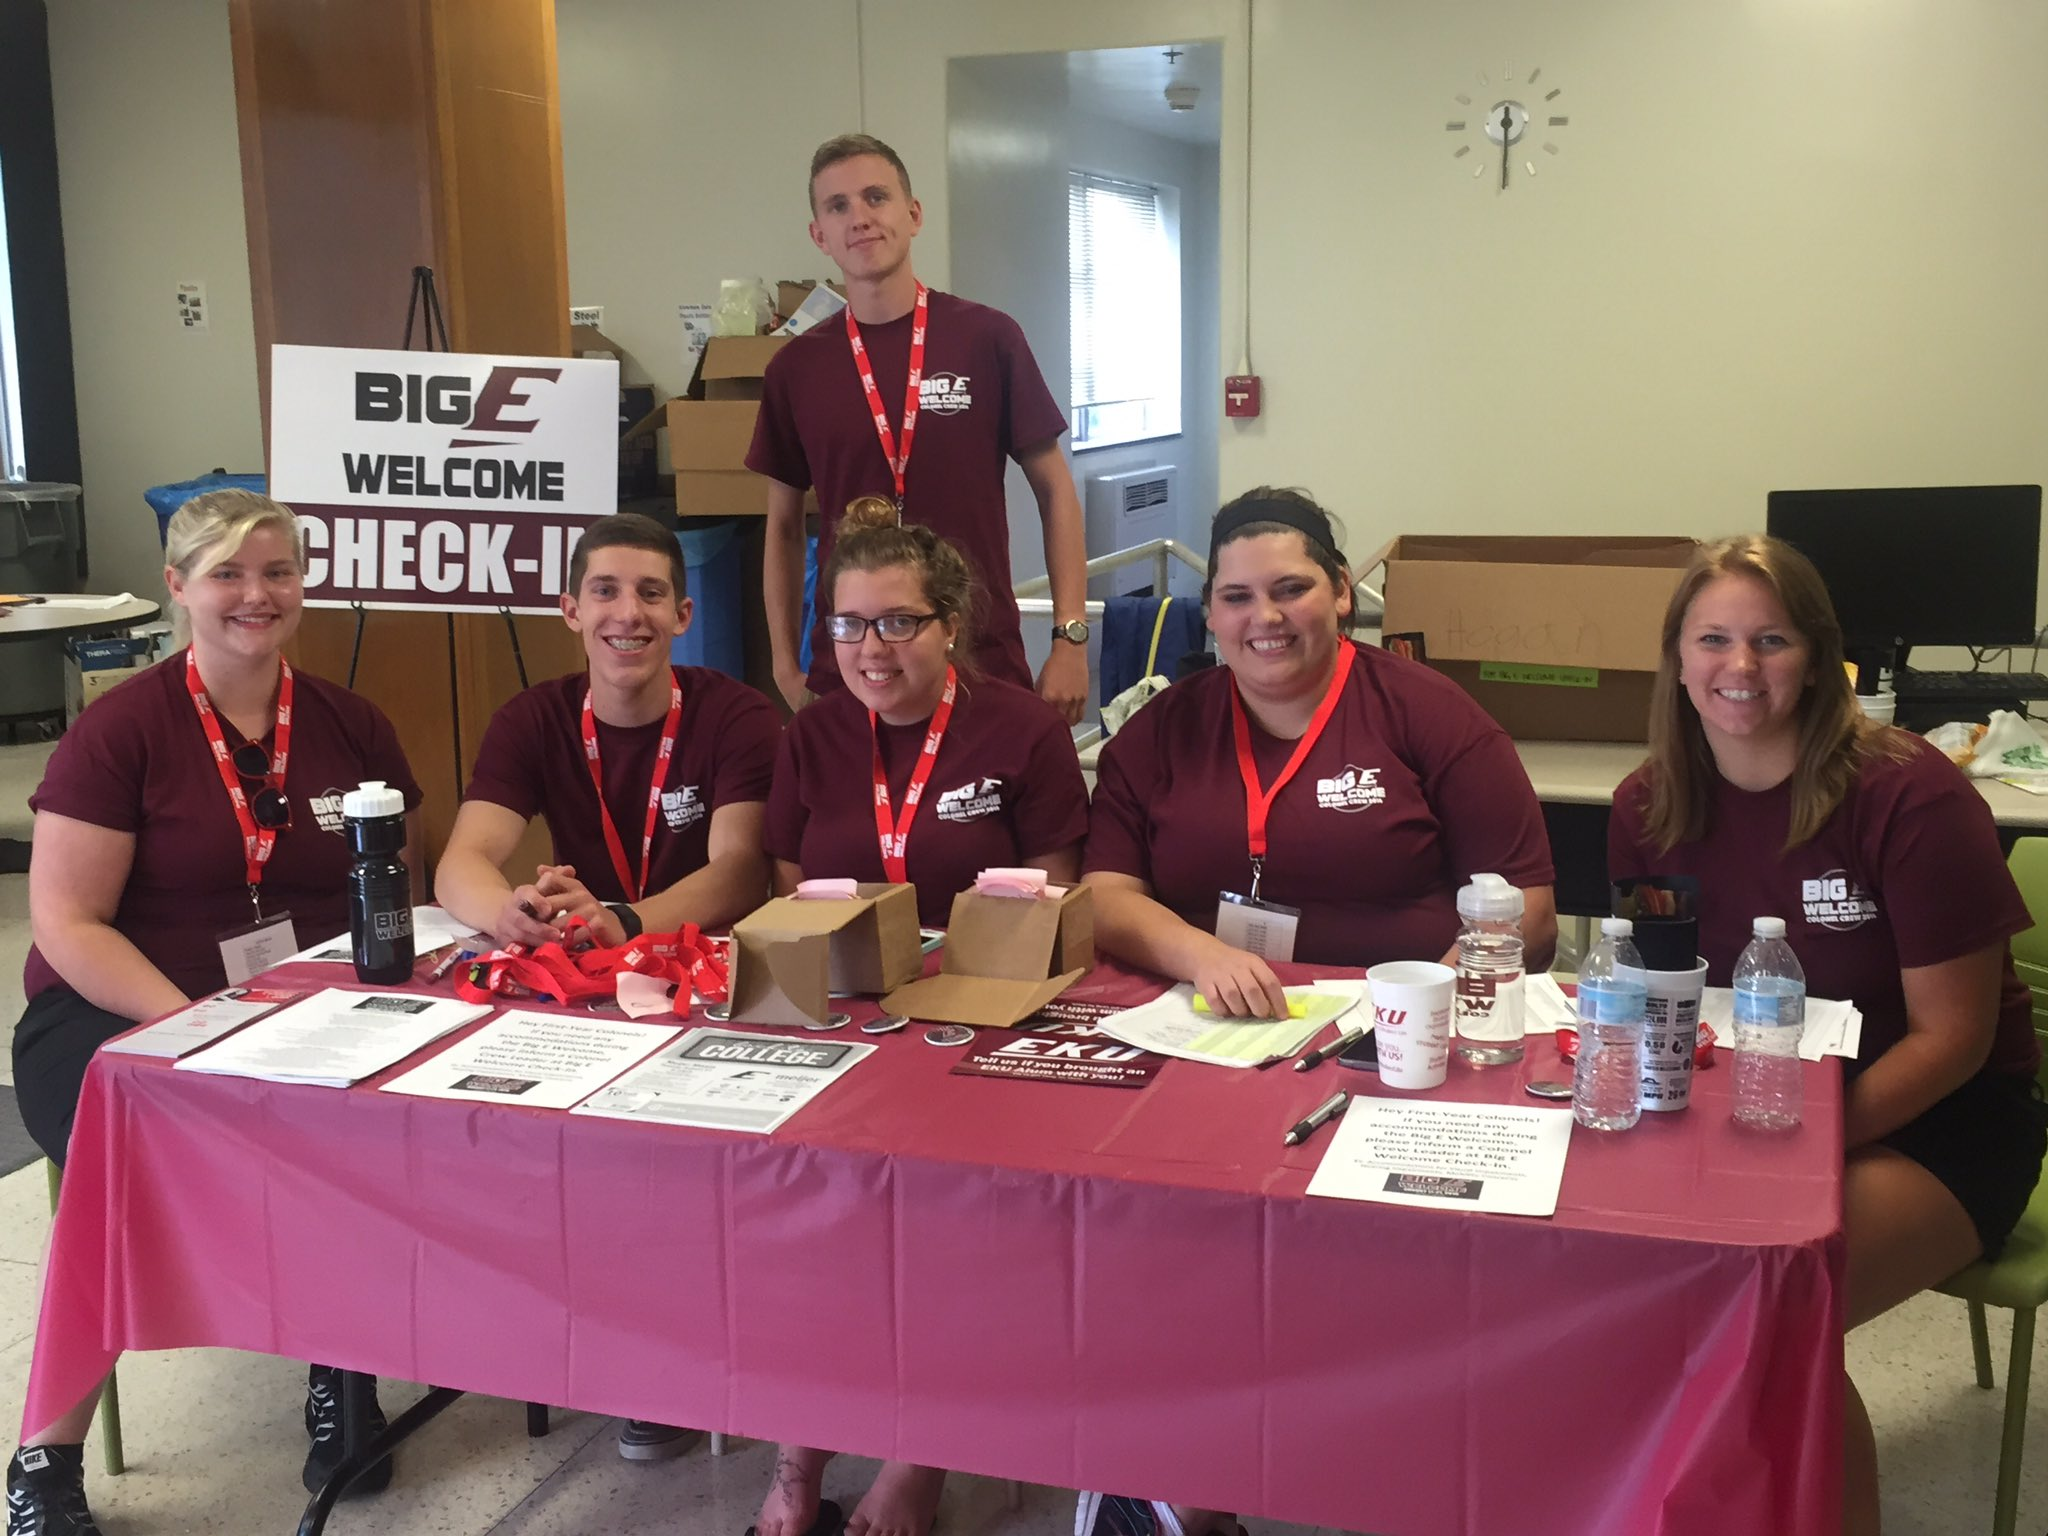 Our stellar Colonel Crew Leaders are having a blast helping #EKU20 check-in for the #BigEWelcome!! https://t.co/4IaW0EqOzh